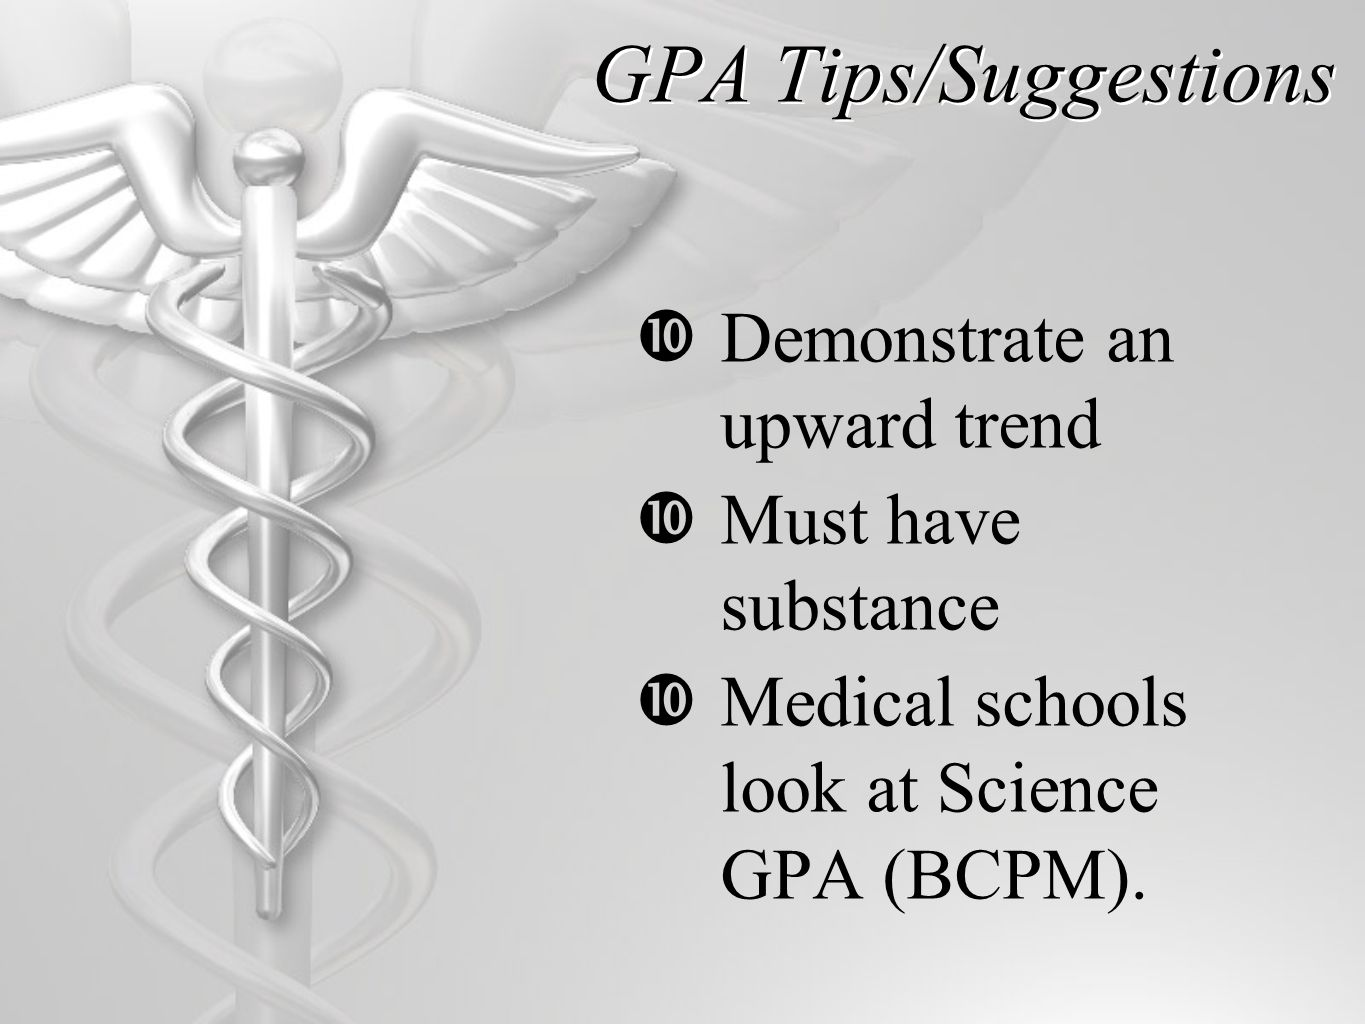 GPA Tips/Suggestions  Demonstrate an upward trend  Must have substance  Medical schools look at Science GPA (BCPM).